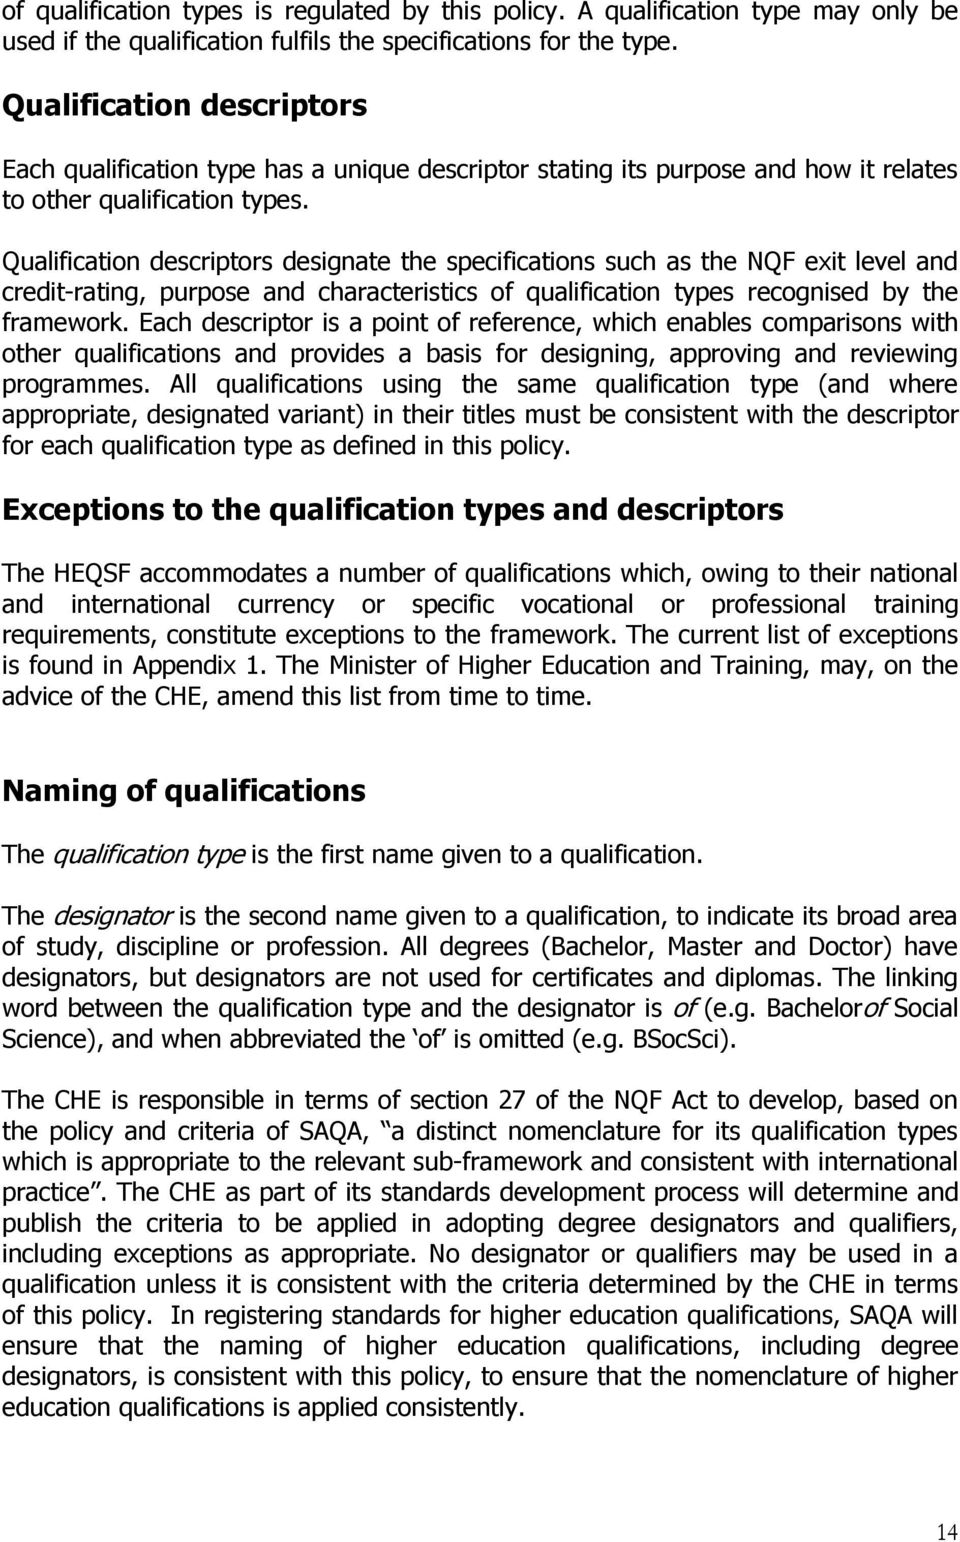 Qualification descriptors designate the specifications such as the NQF exit level and credit-rating, purpose and characteristics of qualification types recognised by the framework.